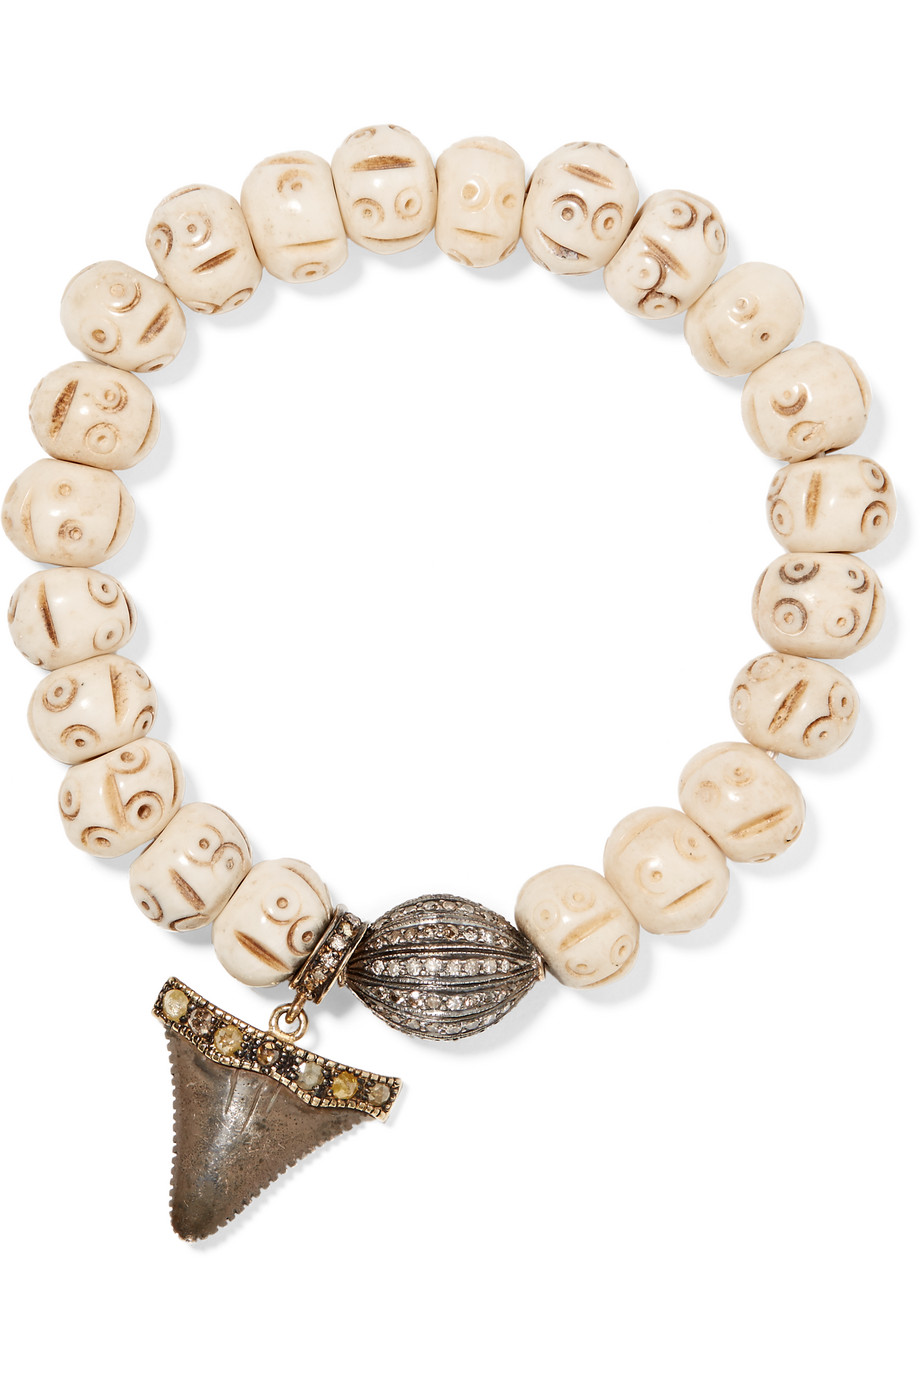 Loree Rodkin Bone, 18-Karat Gold, Oxidized Silver and Diamond Bracelet, White, Women's